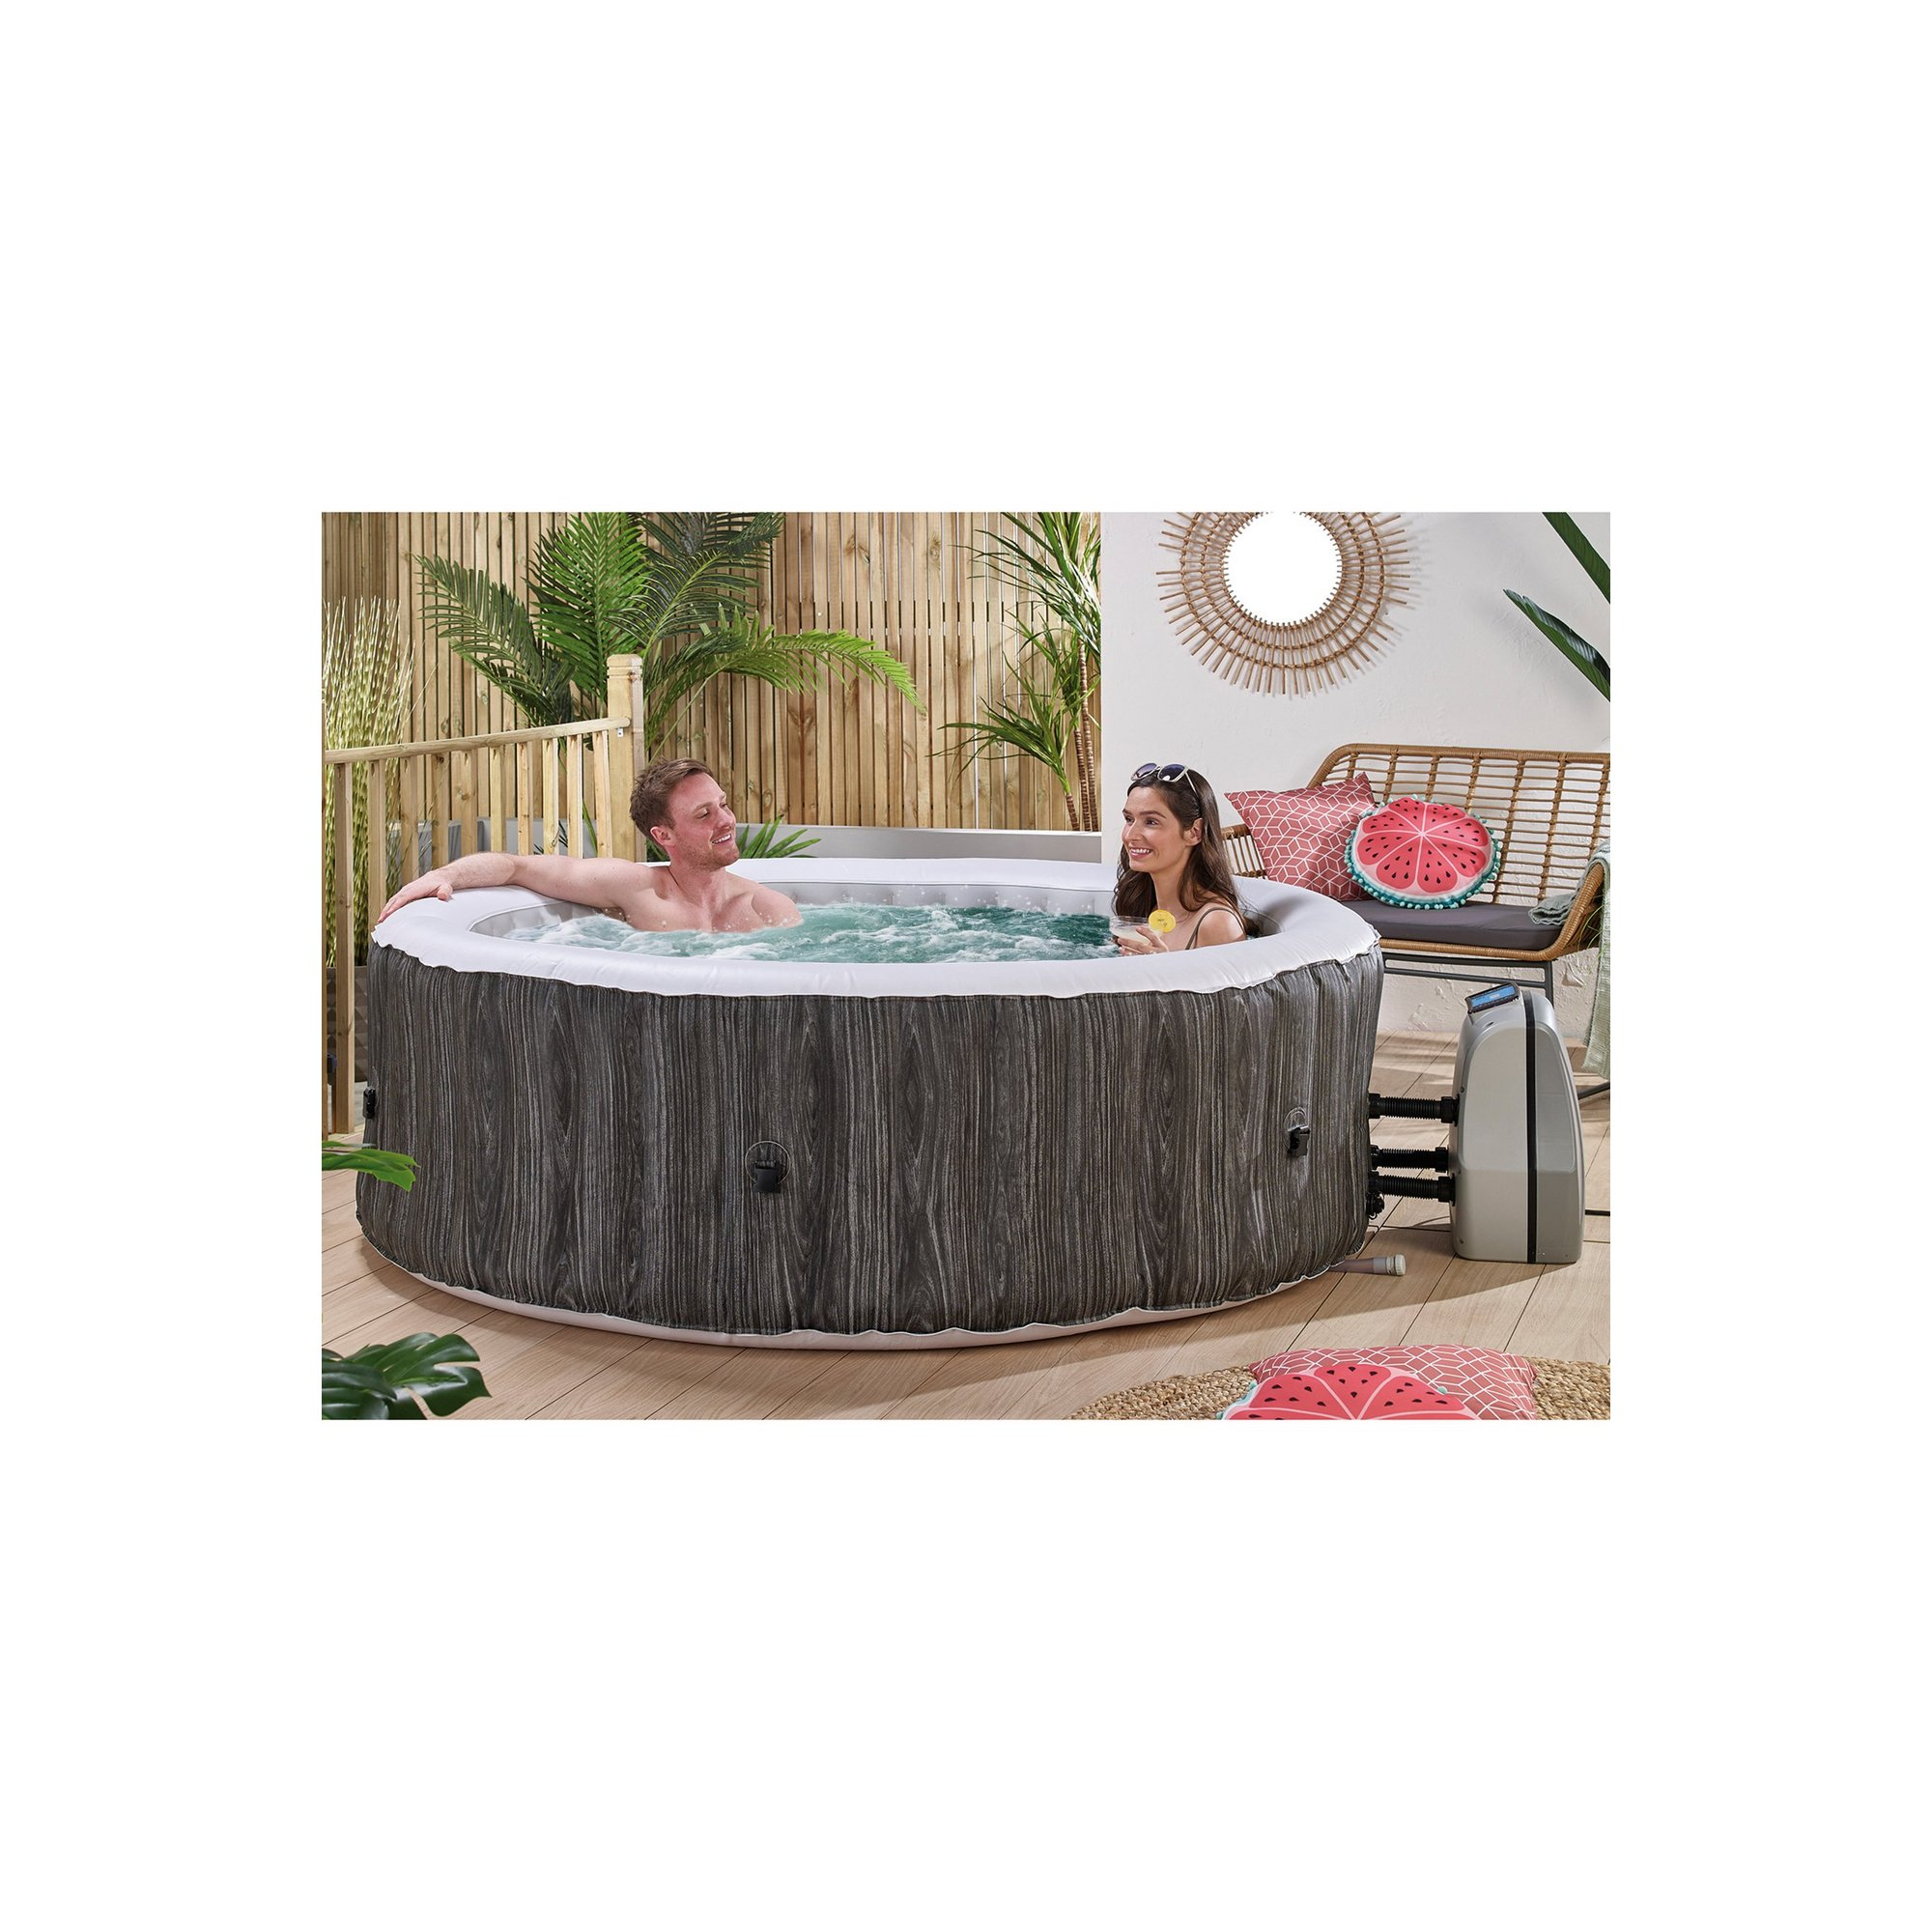 Image of 6 Person Wood-Effect Spa with Floating LED Light